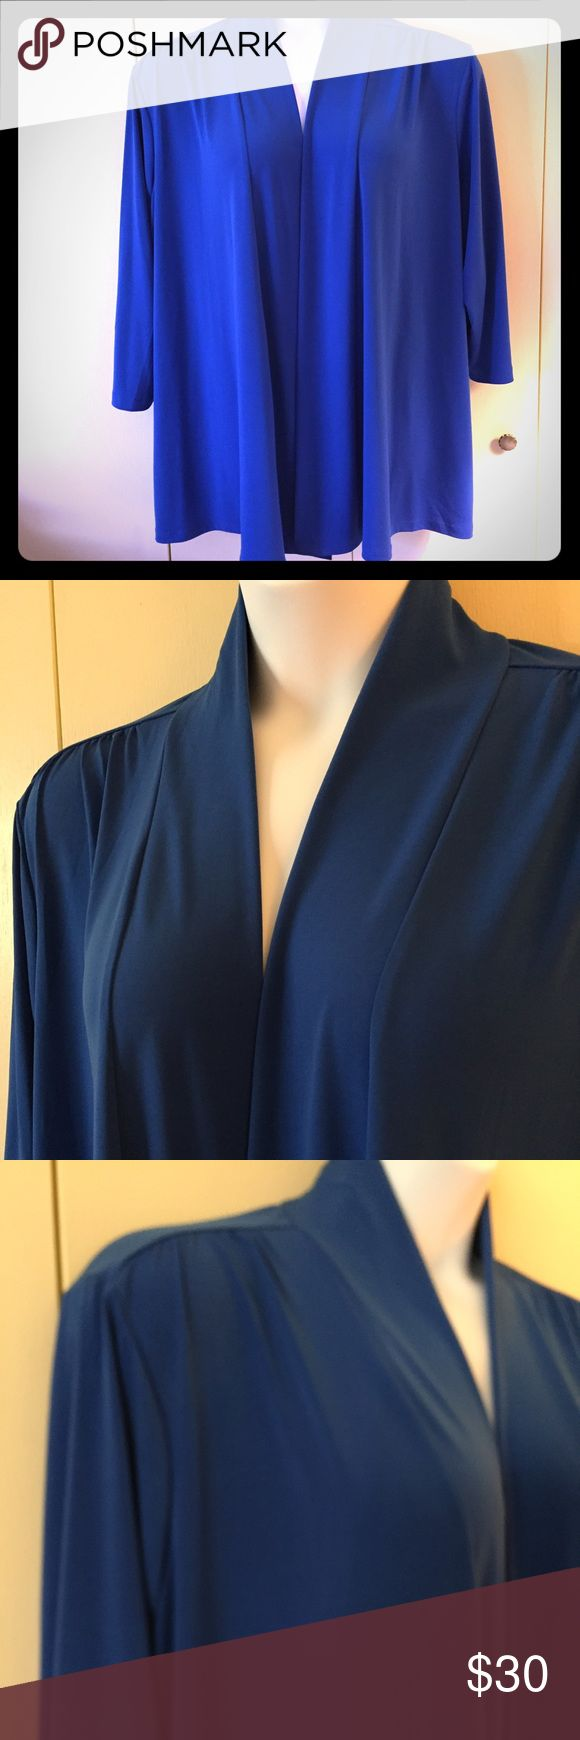 Susan Graver Essentials Liquid Knit cardigan Beautiful royal blue Susan Graver Essentials Liquid Knit open front cardigan. So soft, chic, and always stylish. Poly/spandex blend. Size 2X Susan Graver Sweaters Cardigans